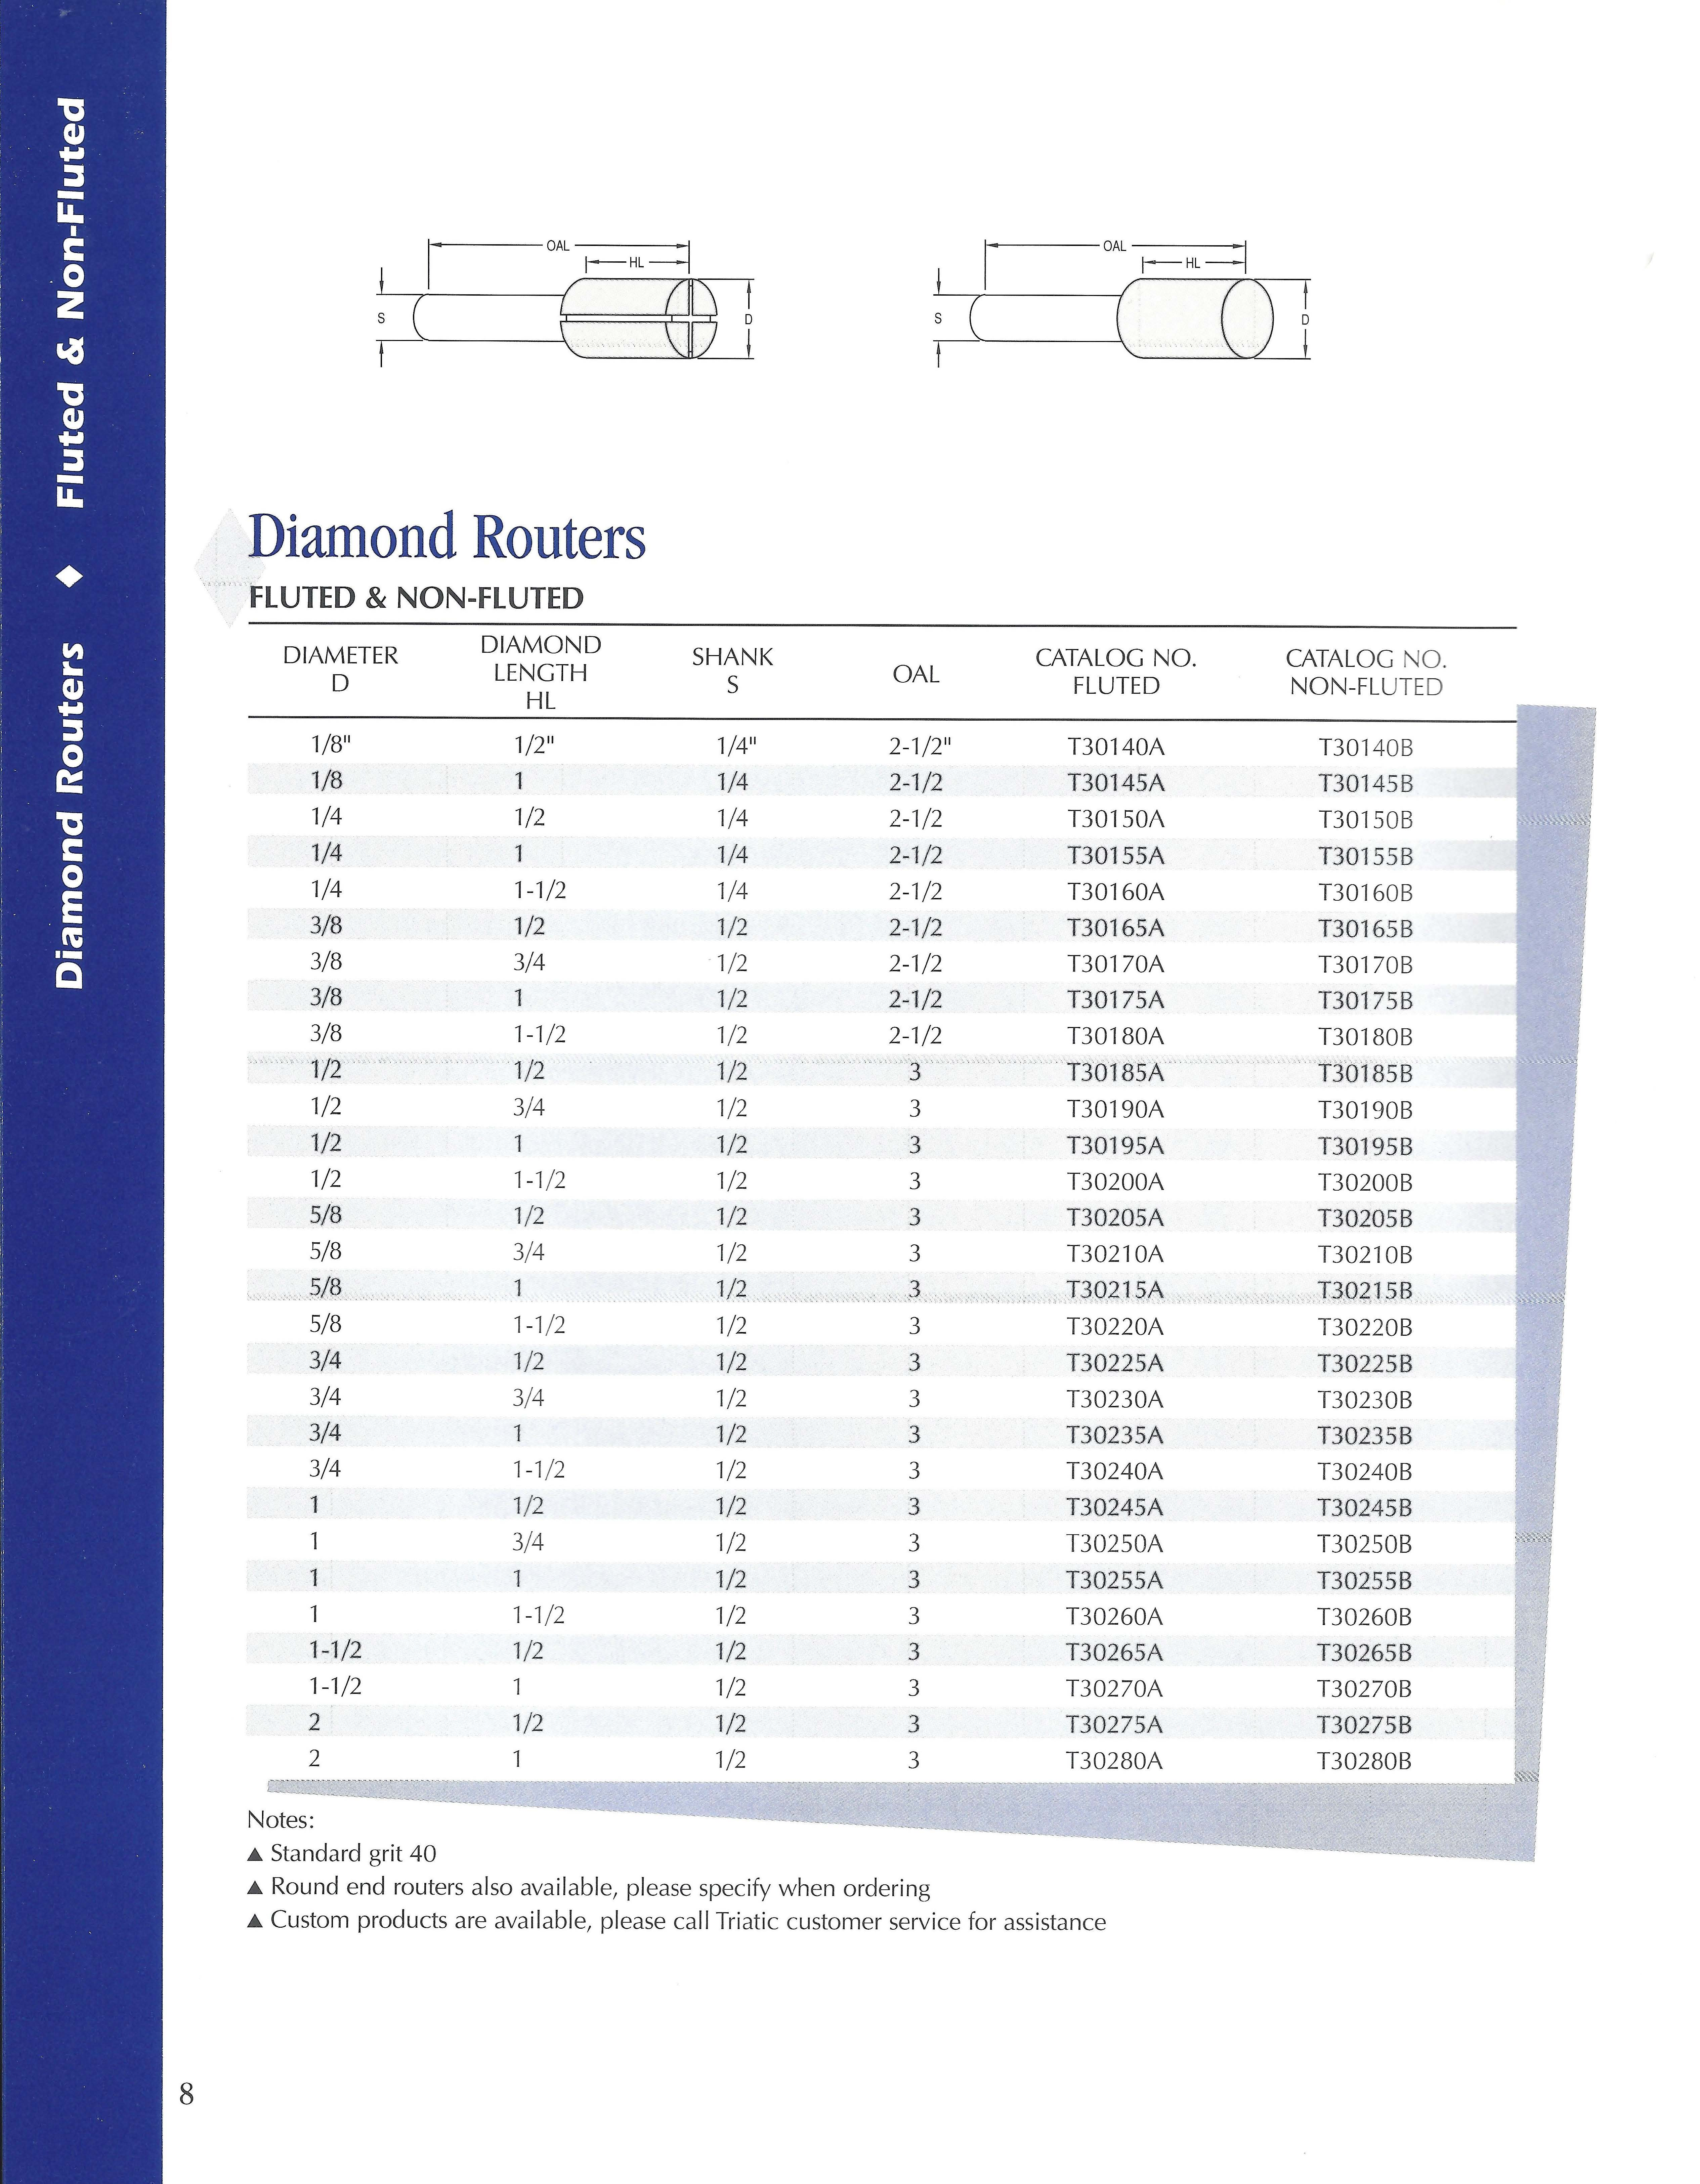 catalog-in-pdf-combined-page-08-image-0001.jpg